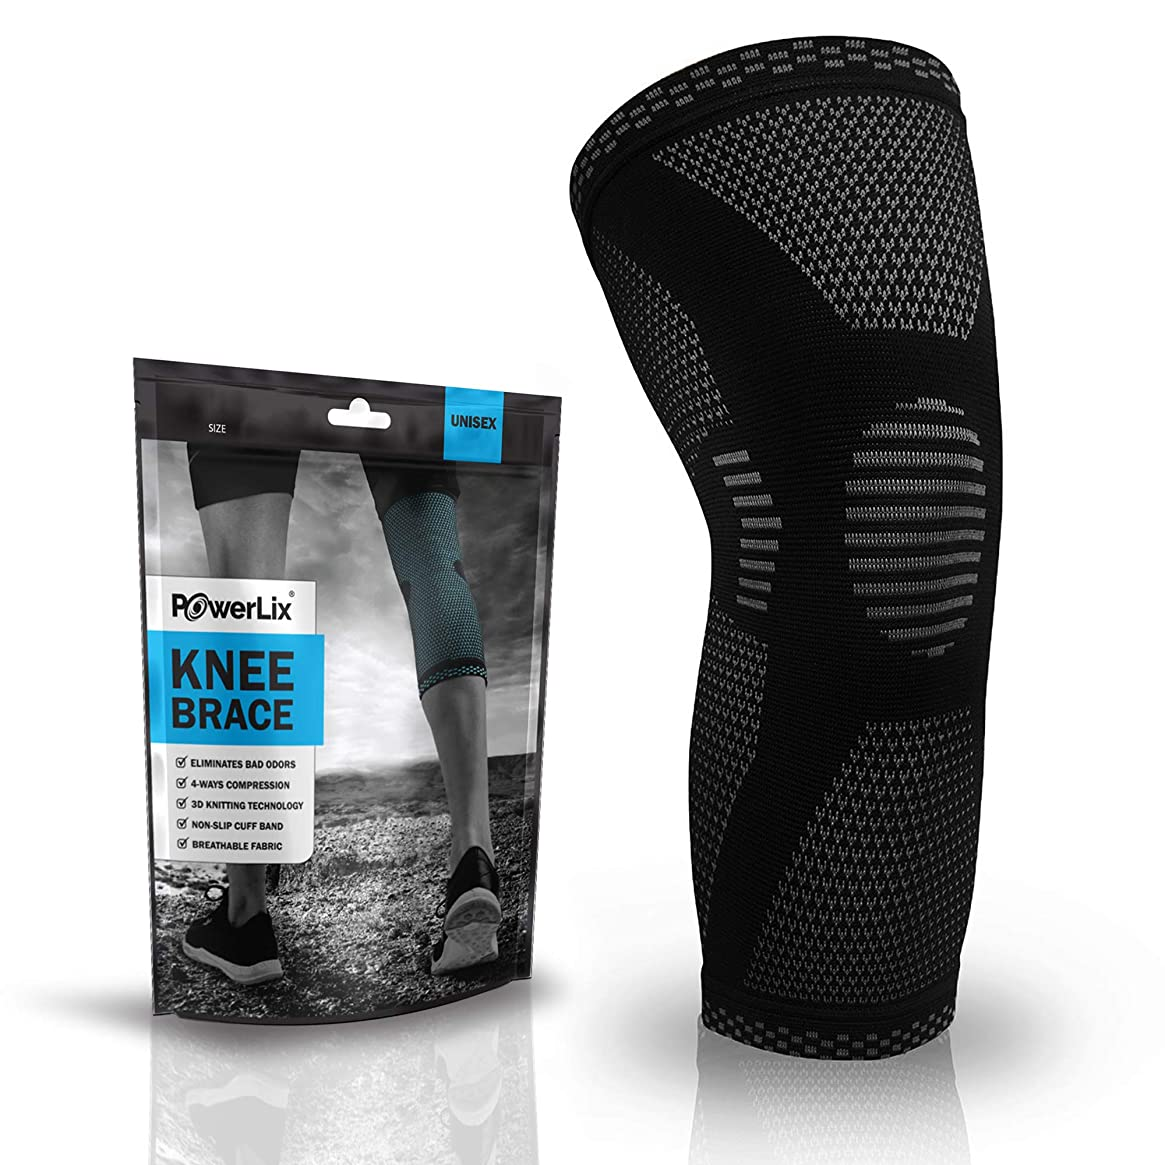 POWERLIX Compression Knee Sleeve - Best Knee Brace for Men & Women – Knee Support for Running, Crossfit, Basketball, Weightlifting, Gym, Workout, Sports etc. – for BEST FIT CHECK SIZING CHART (Single)